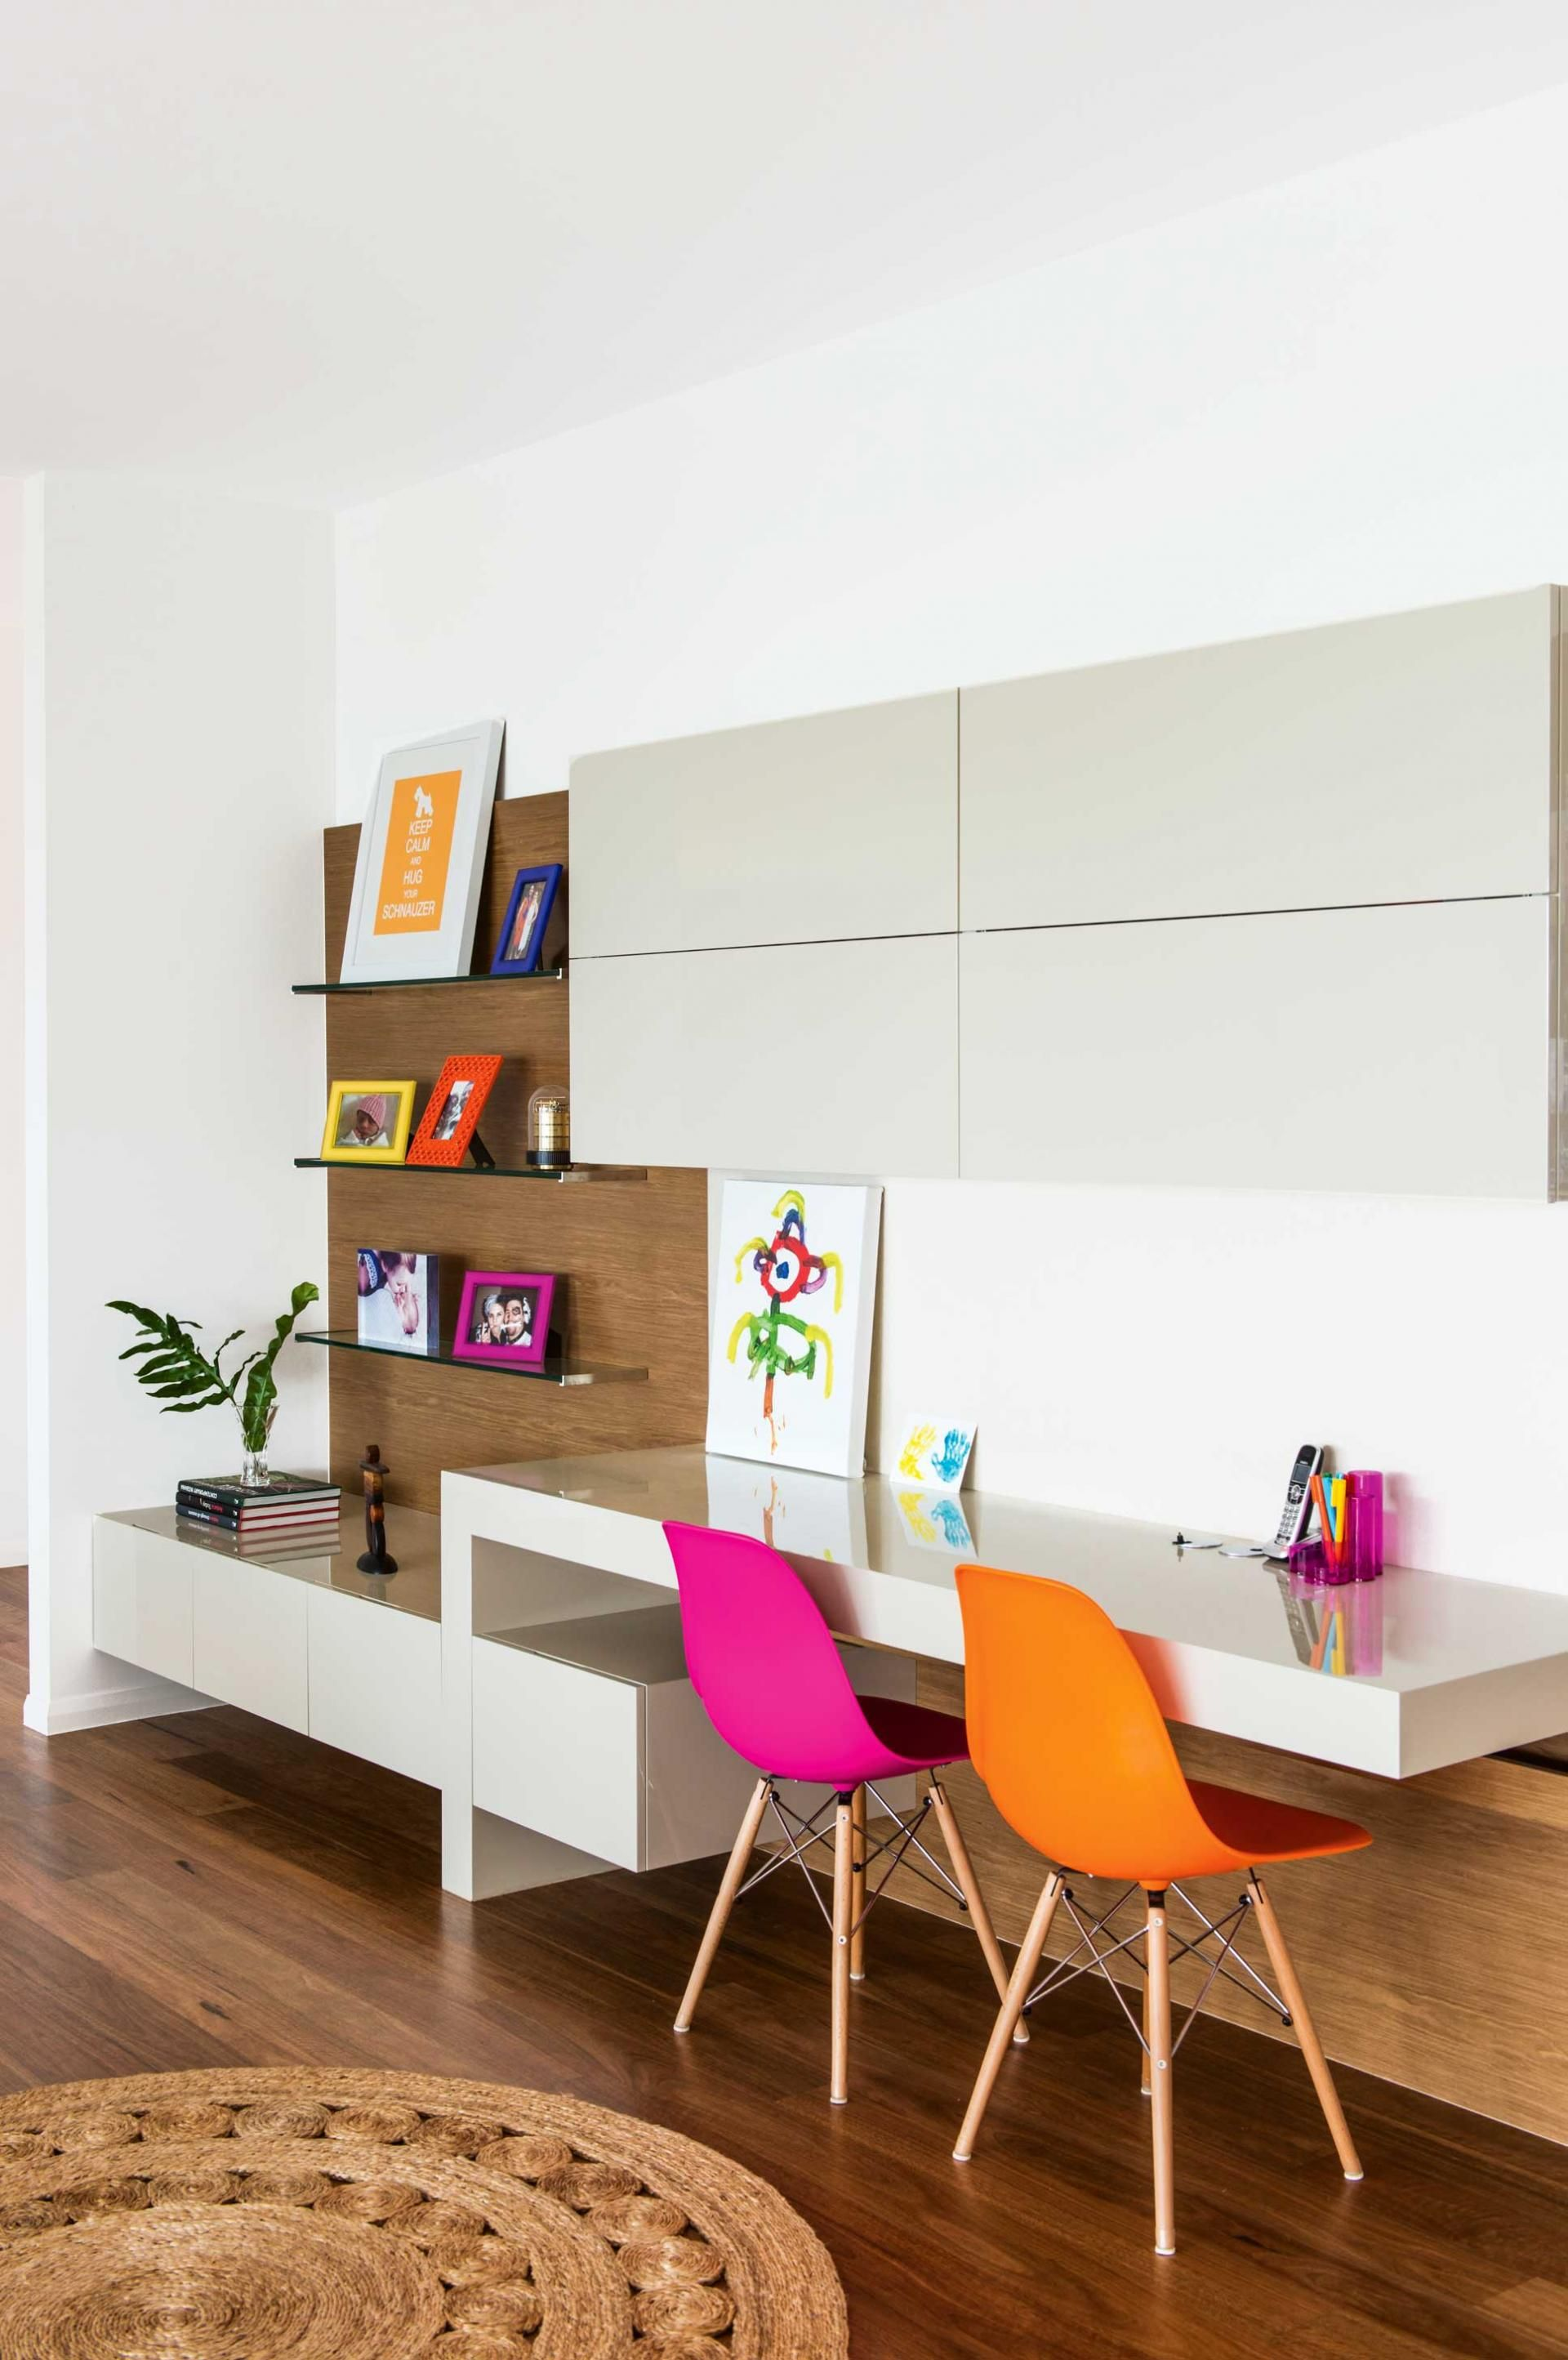 Our guide to bespoke joinery. From the February 2016 issue of Inside Out magazine. Project by Darren James Interiors (darrenjames.com.au). Available from newsagents, Zinio, http://www.zinio.com, Google Play, https://play.google.com/store/magazines/details/Inside_Out?id=CAowu8qZAQ, Apple's Newsstand, https://itunes.apple.com/au/app/inside-out/id604734331?mt=8ign-mpt=uo%3D4 and Nook.